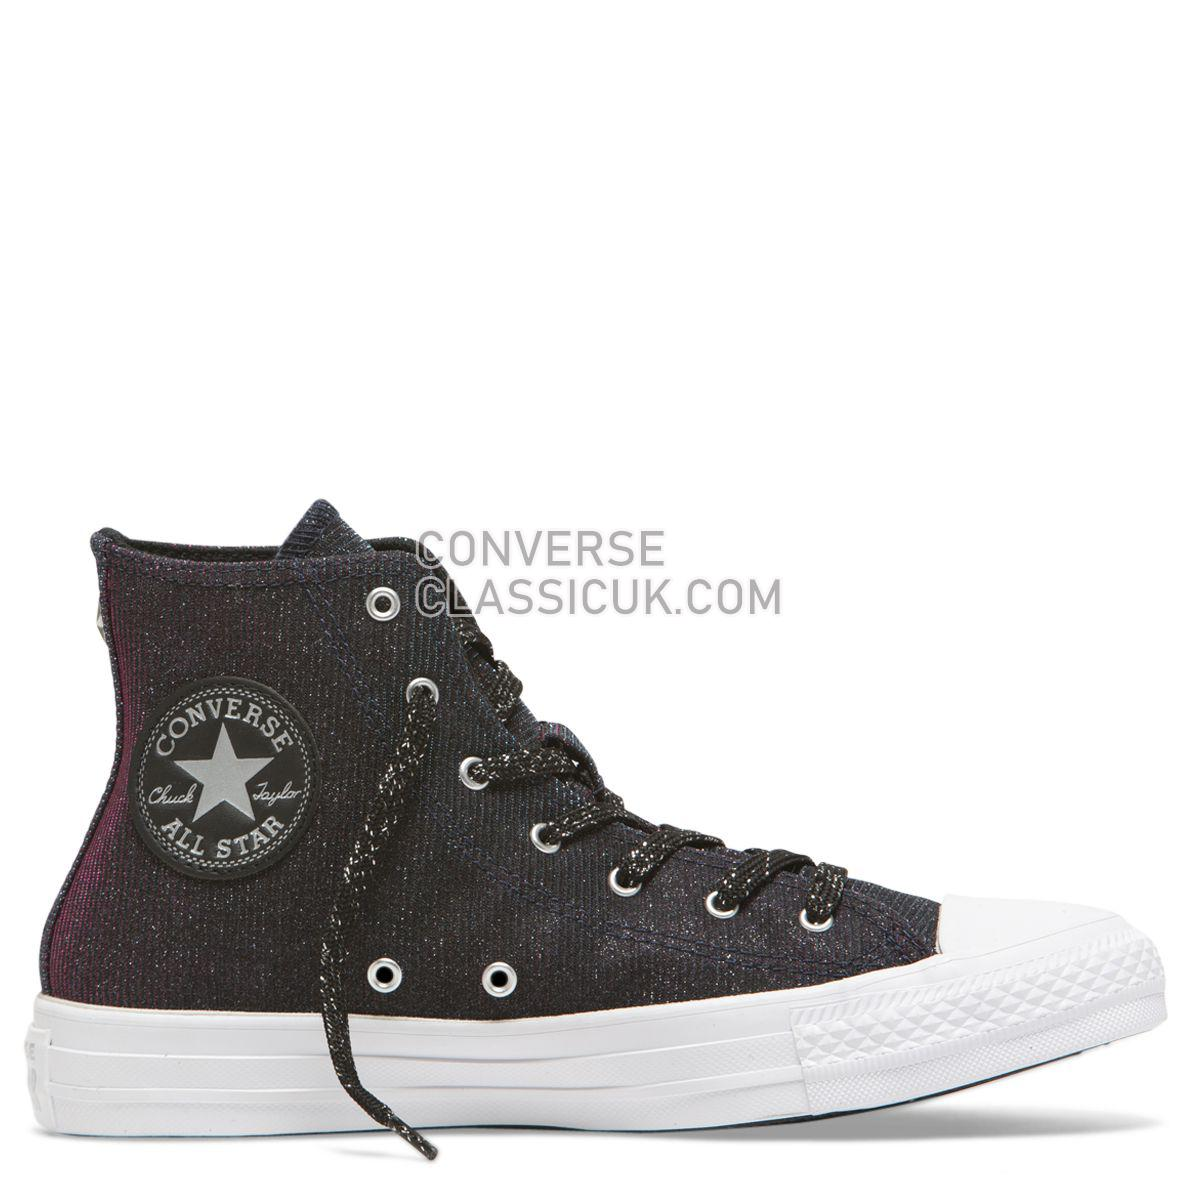 Converse Chuck Taylor All Star Starware High Top Laser Black Womens 564911 Laser Black/Pink/Pure Silver Shoes